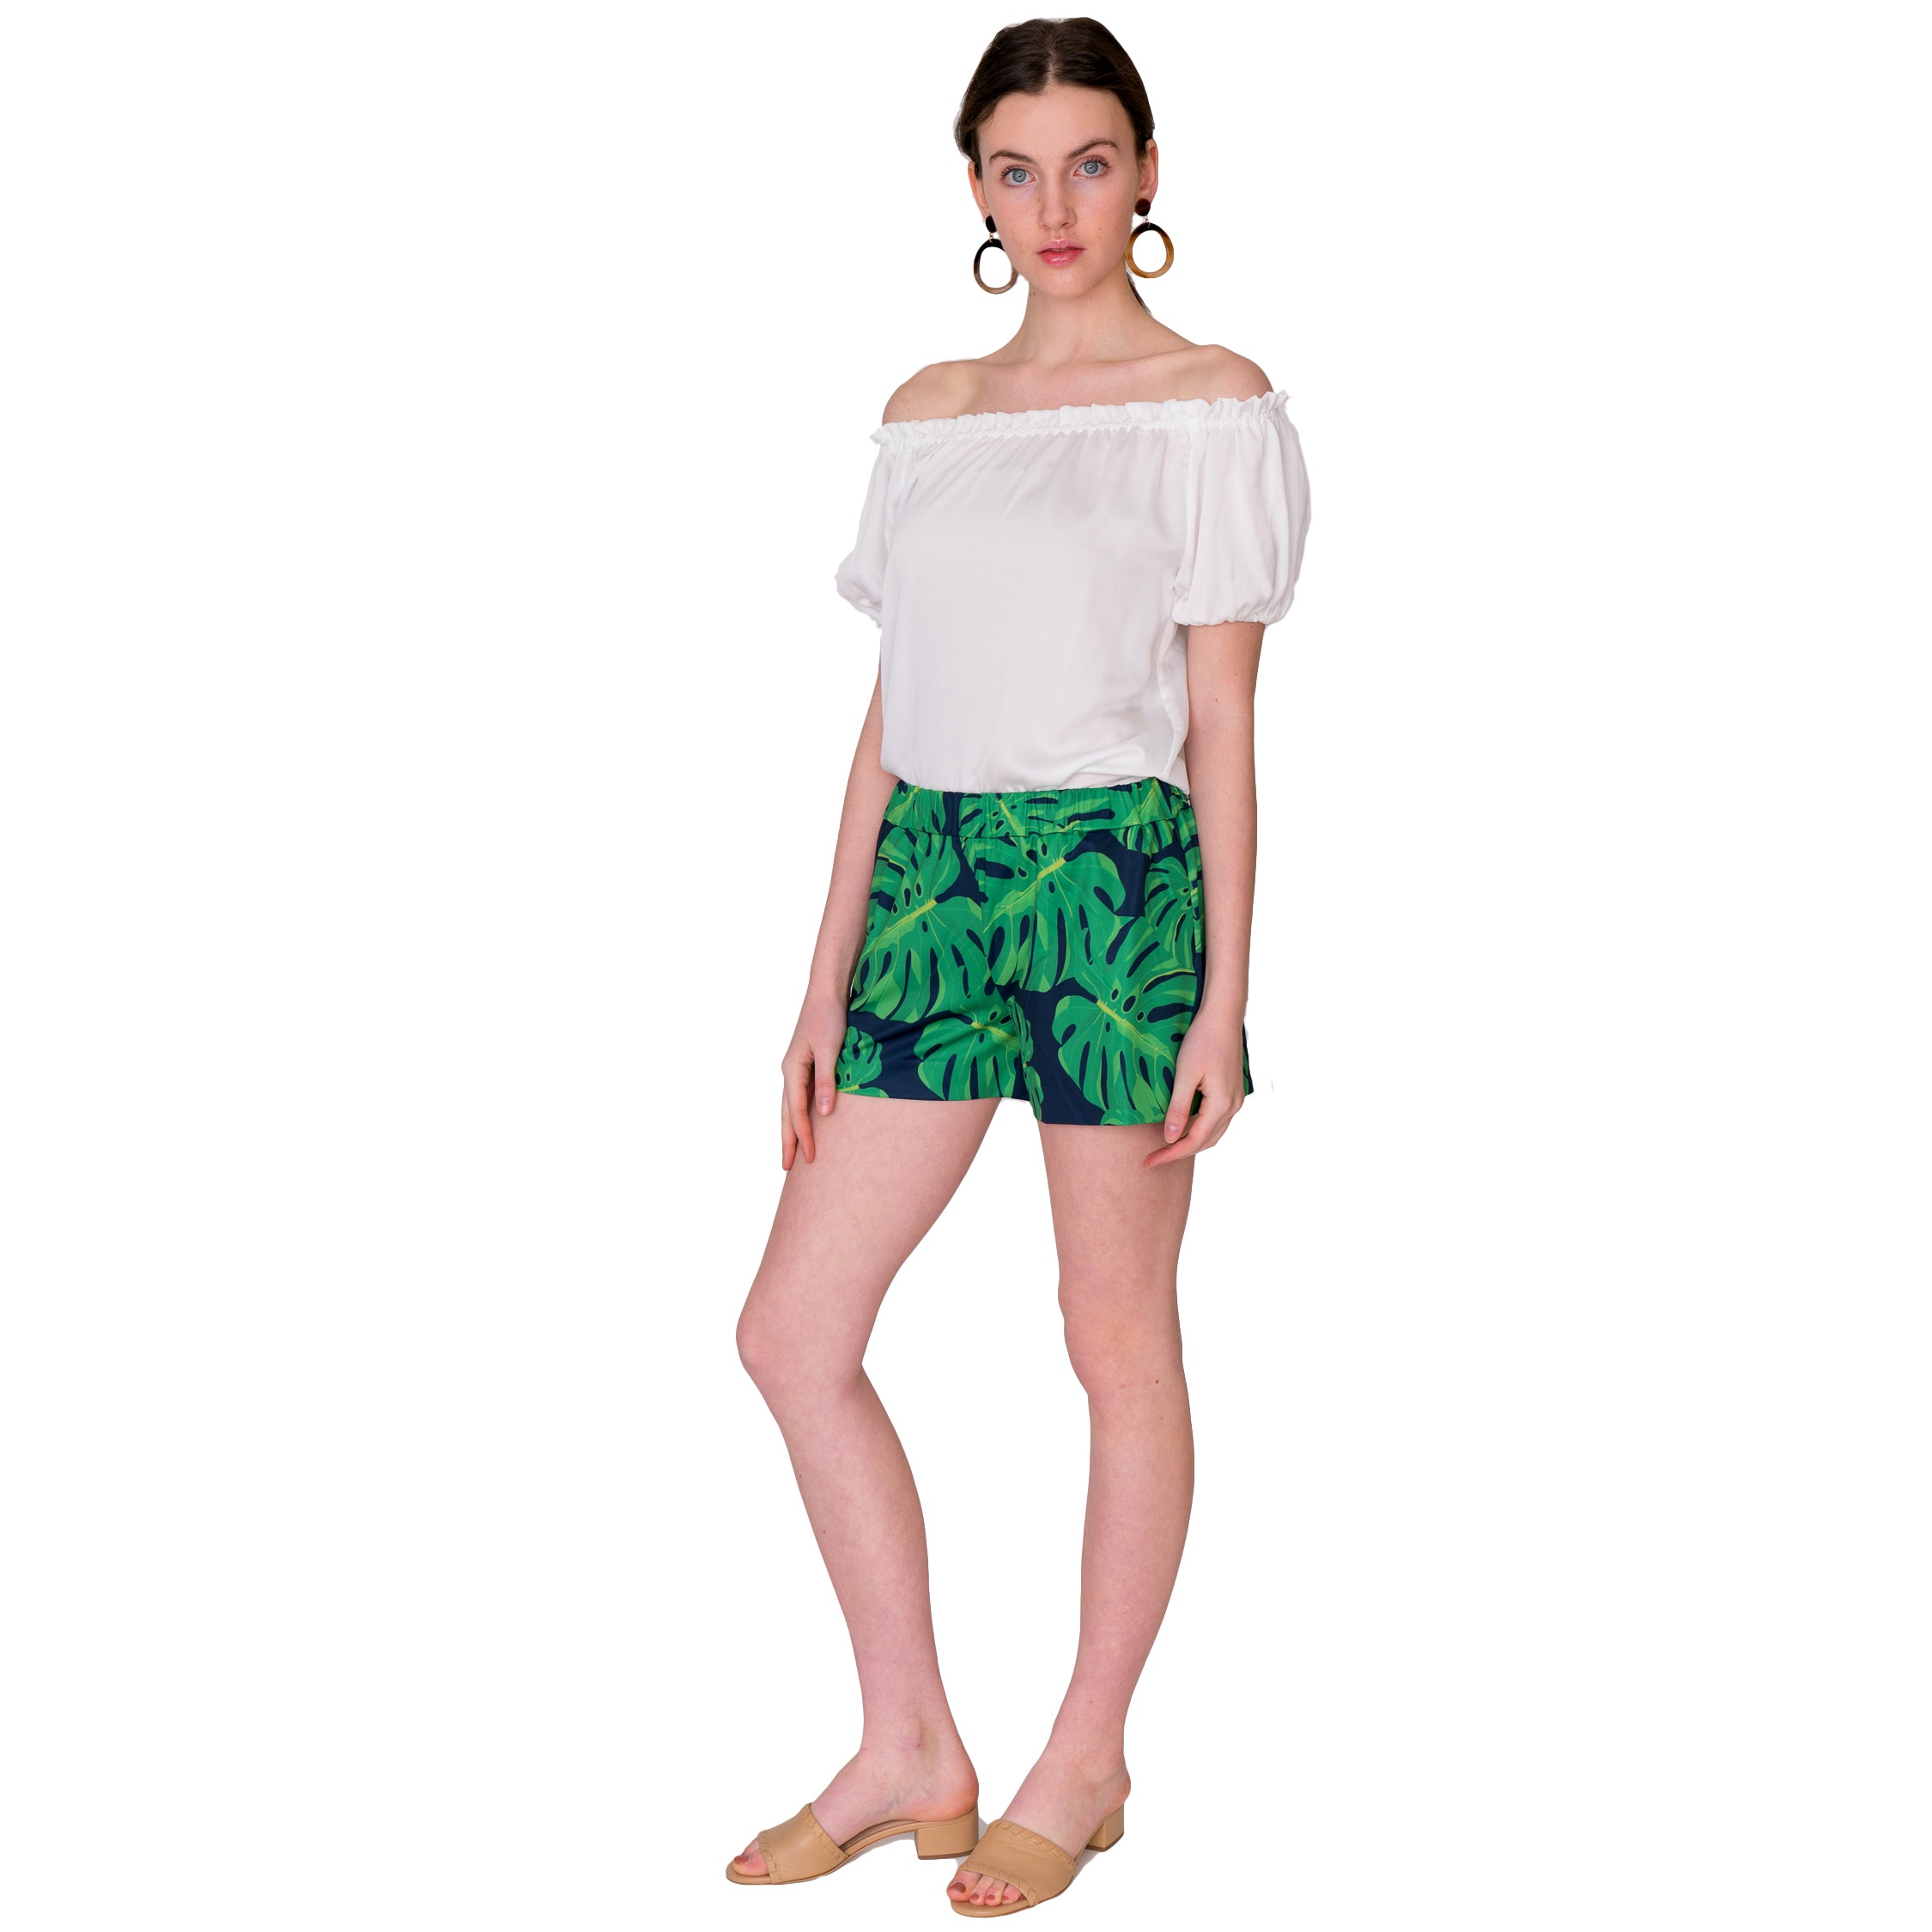 Libby Pull On Shorts in Navy and Green Palm Print - Elizabeth Ackerman New York